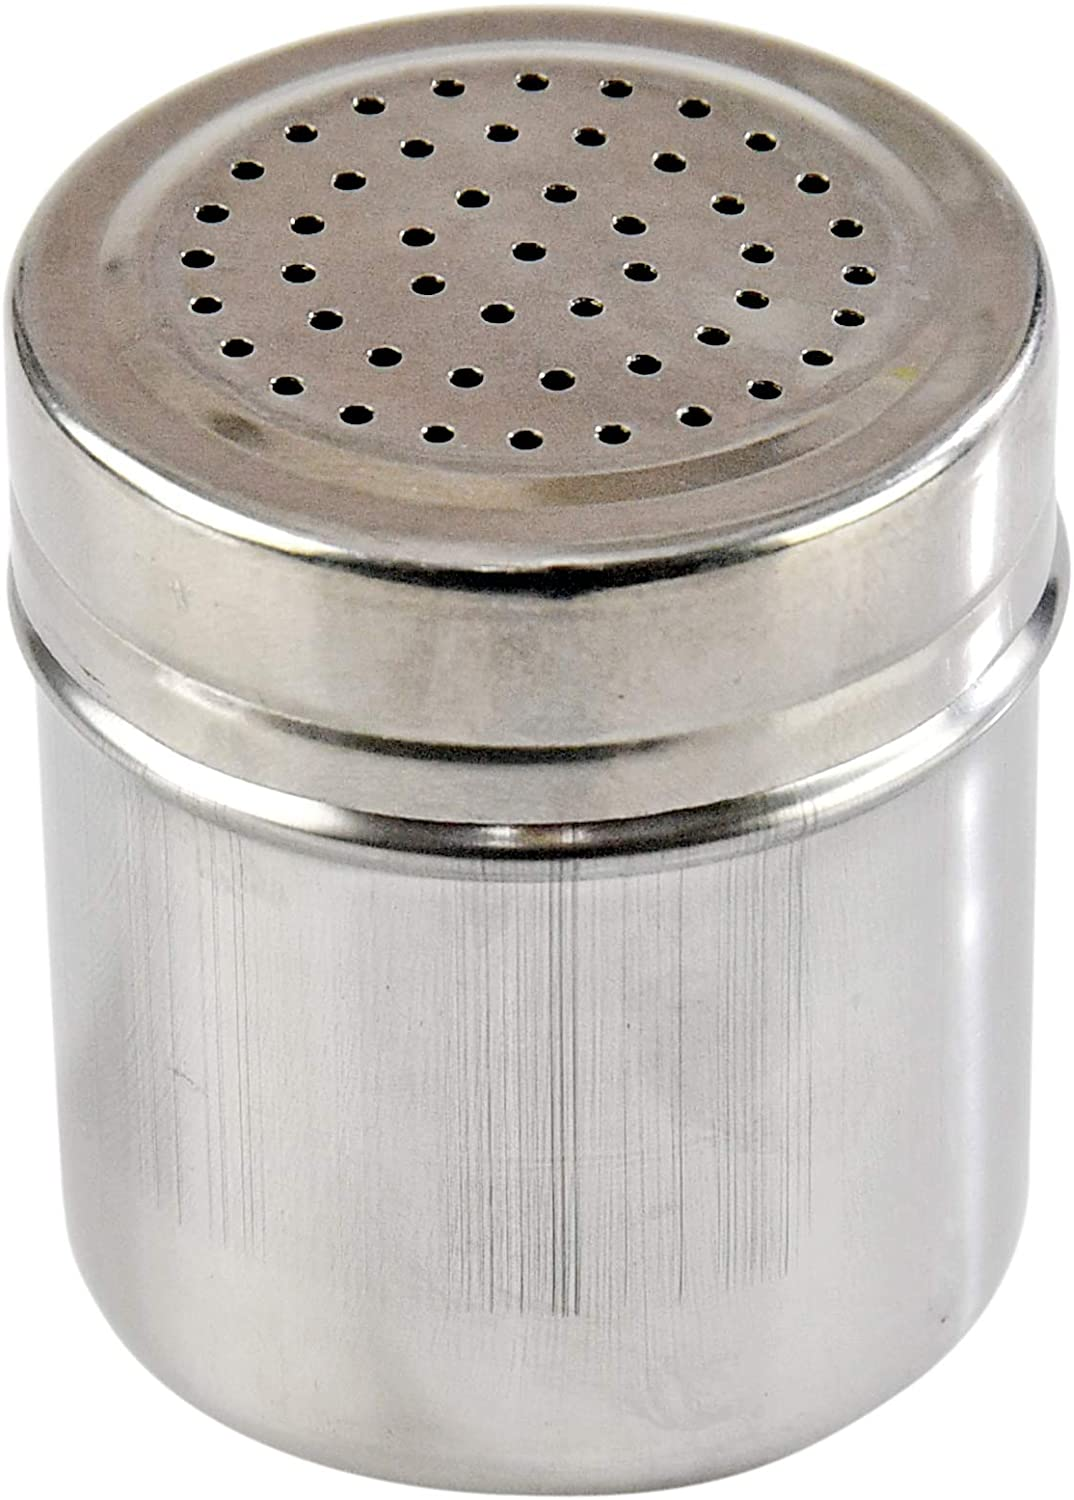 HOME-X Spice Shaker, Kitchen Utensil for Spices, Seasoning, Sugar, and More-Stainless Steel-5 oz.